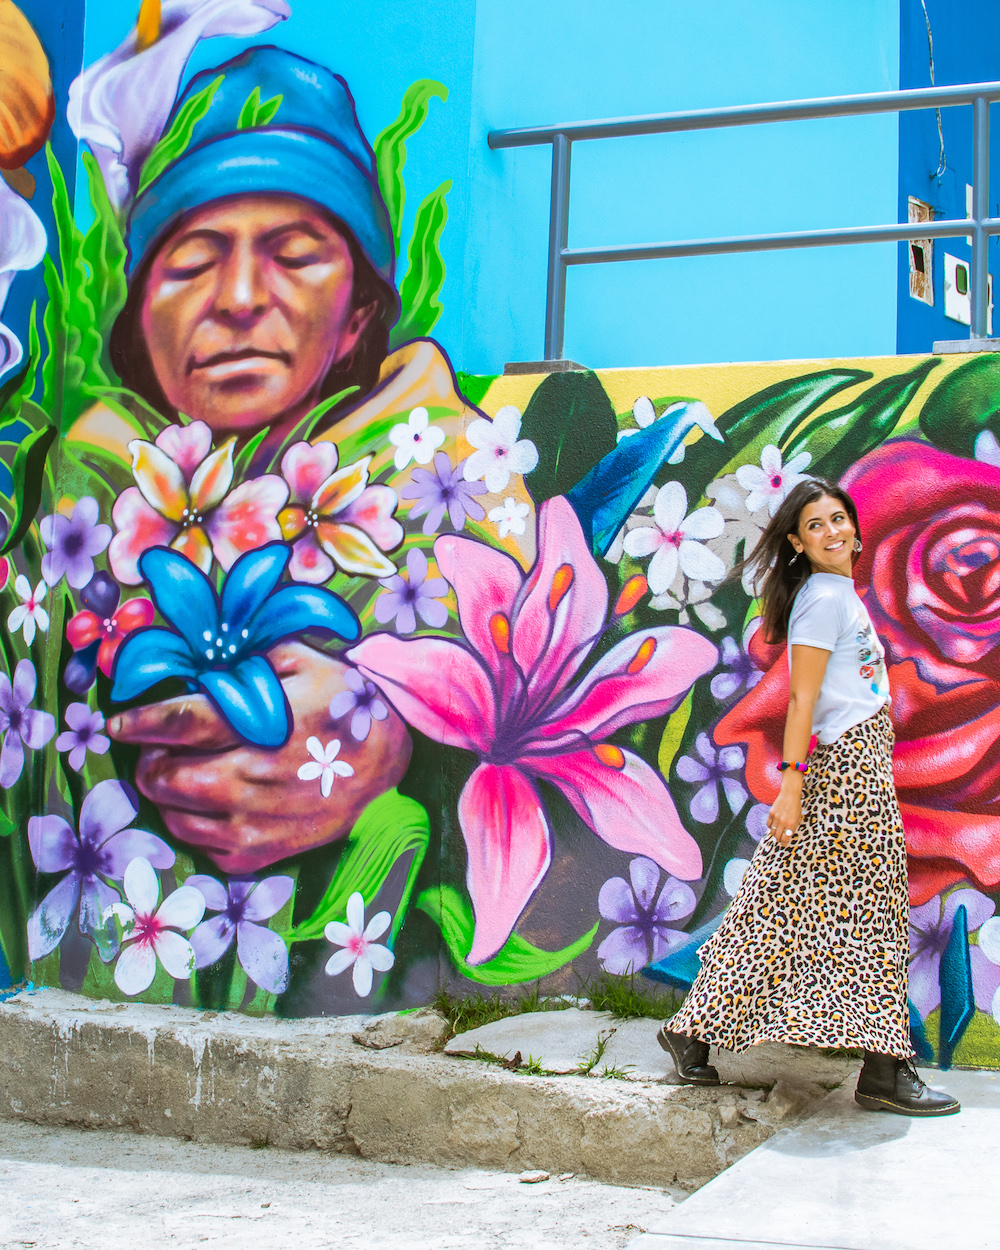 woman walking in color neighborhood with vibrant mural